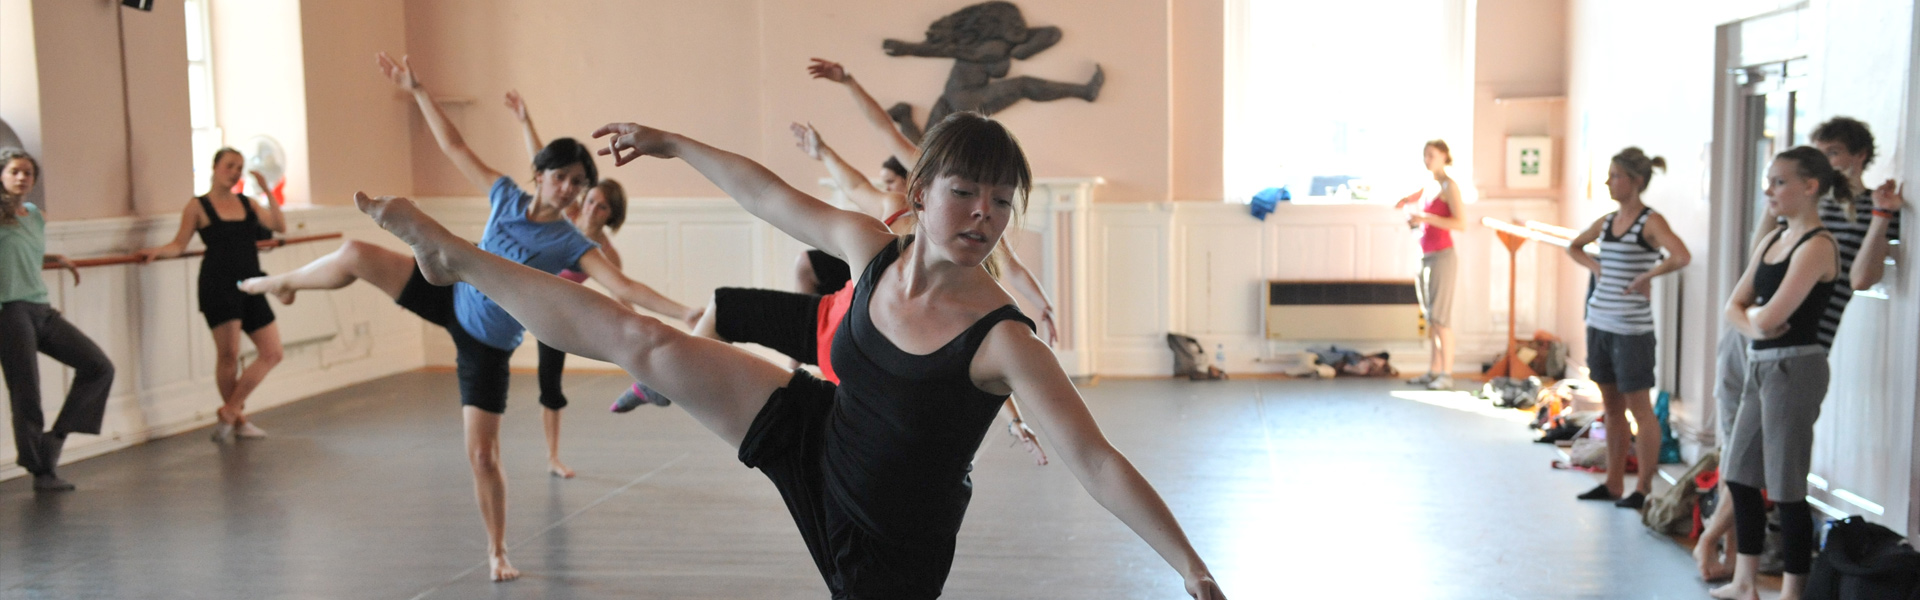 Ludus Dance - Classes and Studio Hire